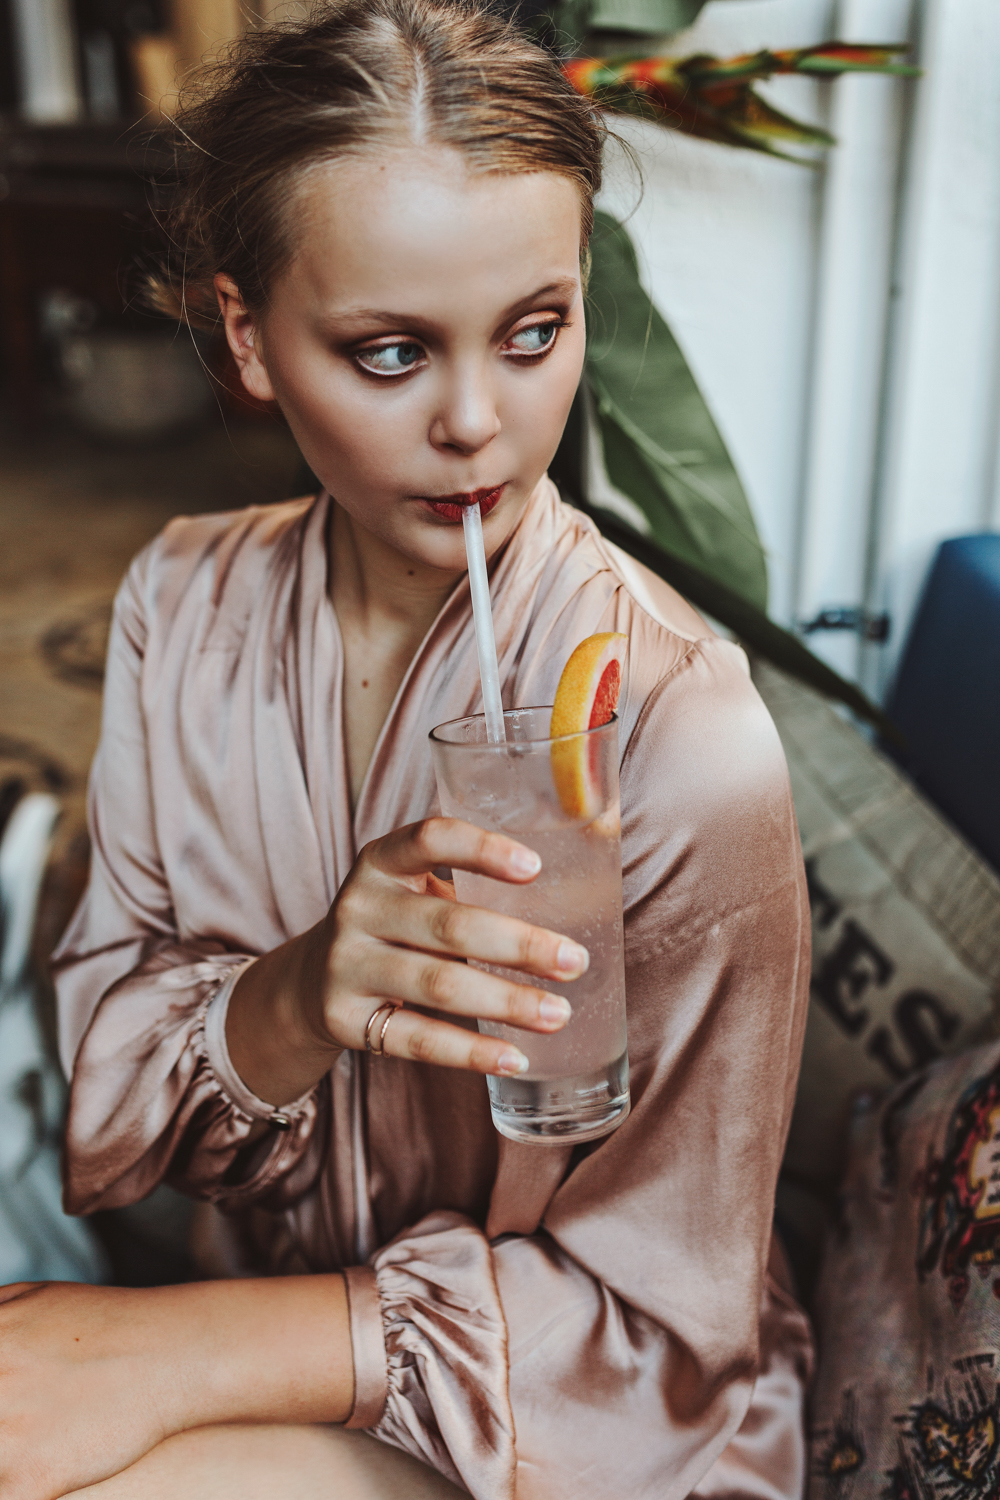 Model sips in an elegant shot for a fashion shoot in Brisbane.